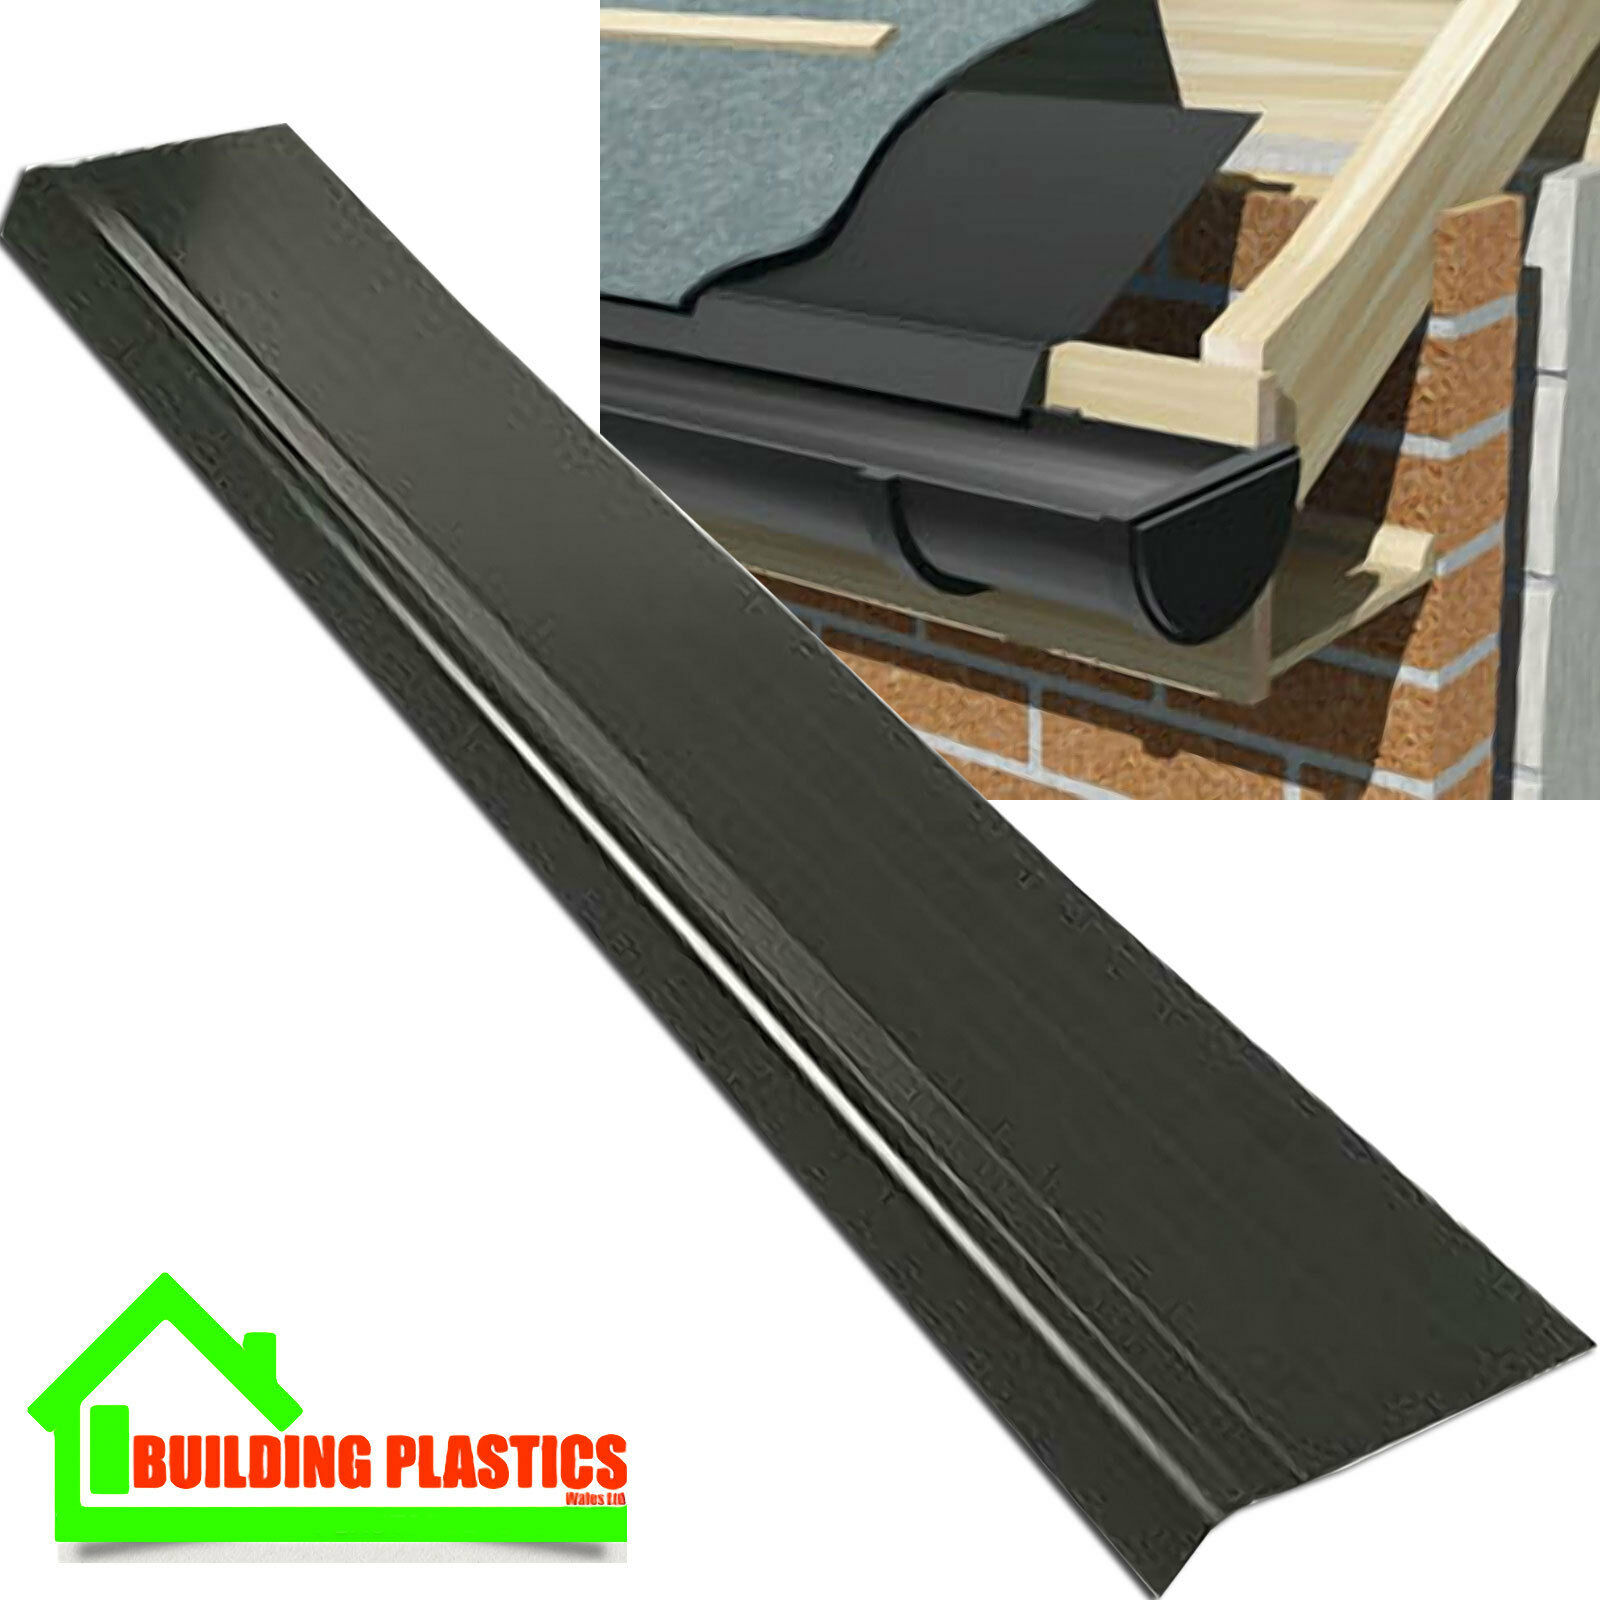 10 X Eaves Protectors 1 5 Mtr Felt Support Trays Sagging